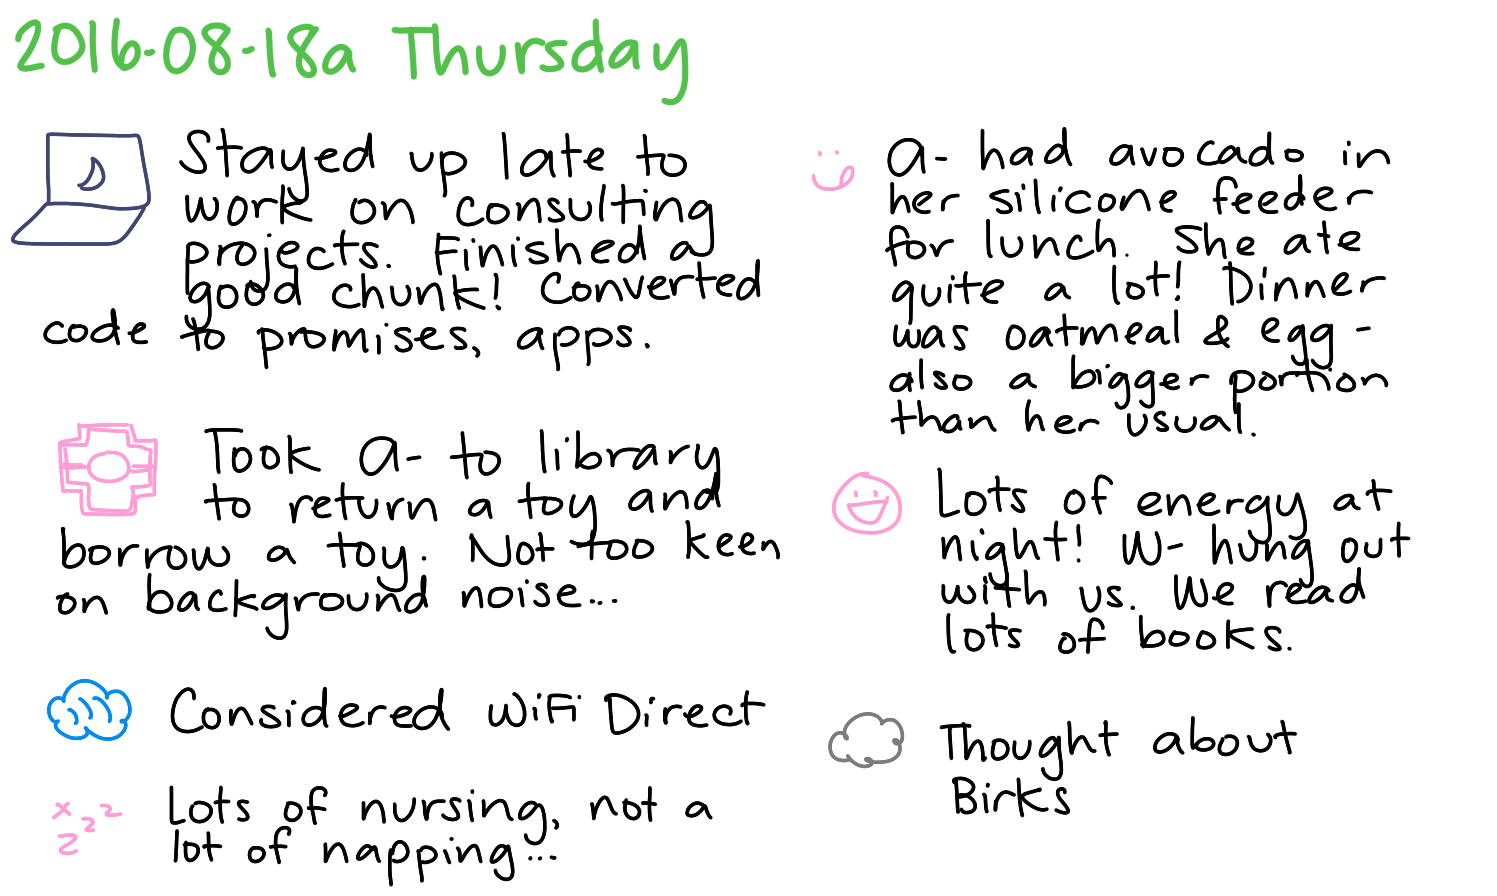 2016-08-18a Thursday -- index card #journal.png